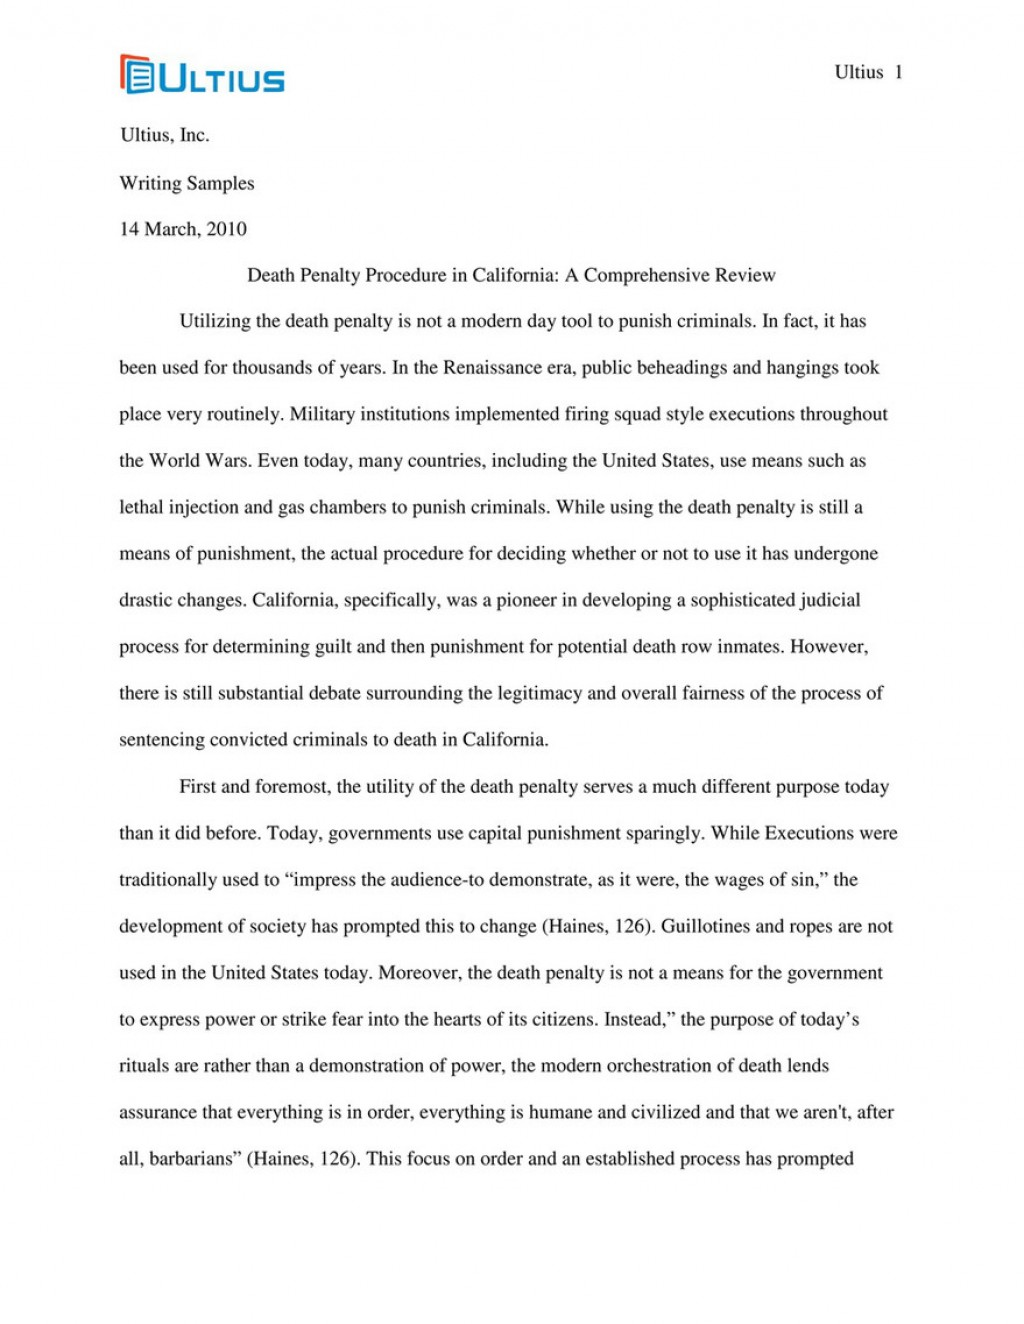 001 Research Paper On Death Penalty Best Essay In The Philippines Titles For Large